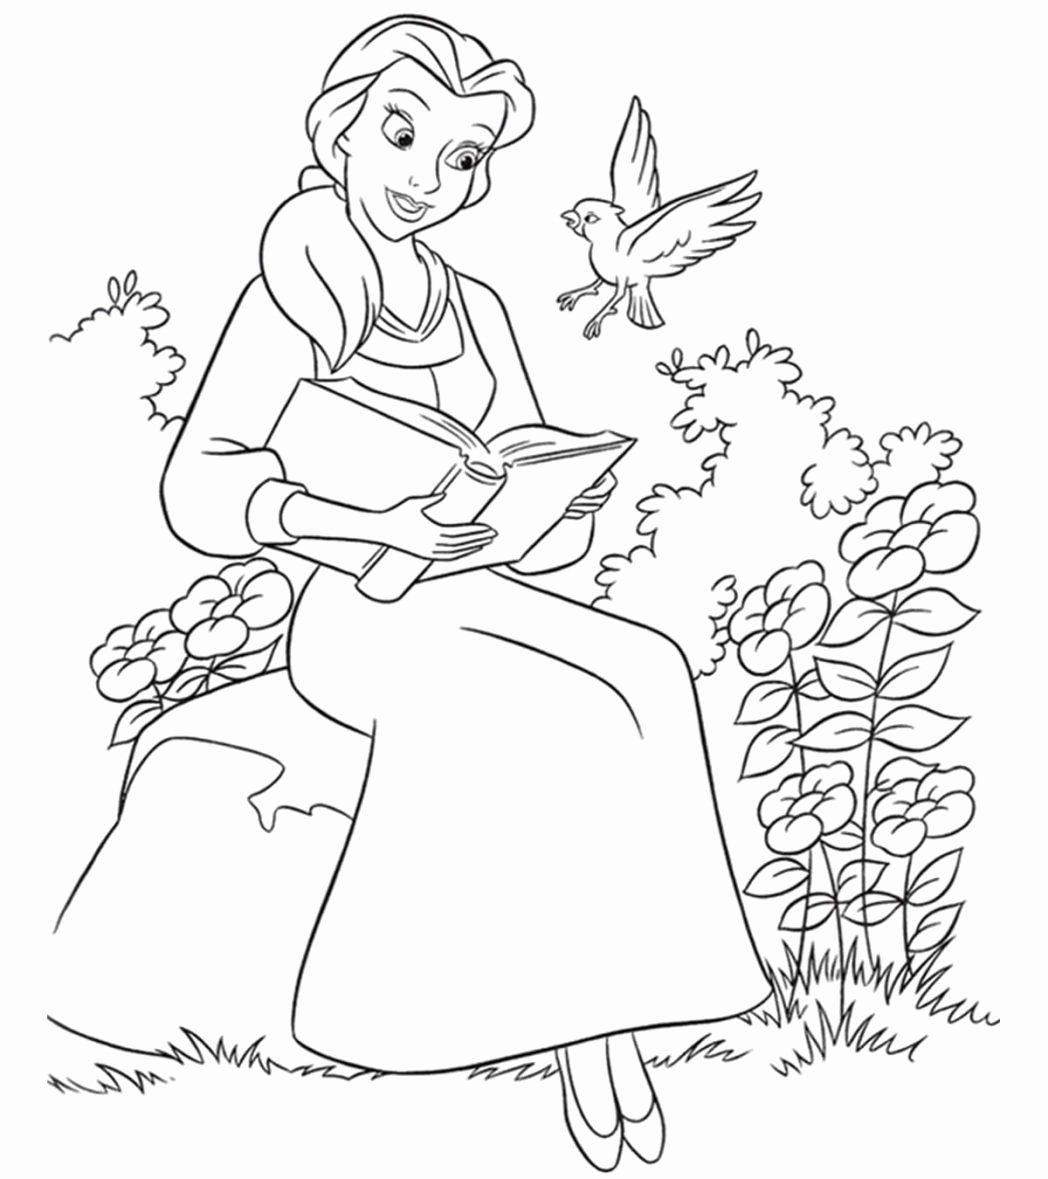 Belle Coloring Pages To Print Fresh Top 10 Printable Beauty And The Beast Coloring Line Belle Gambar